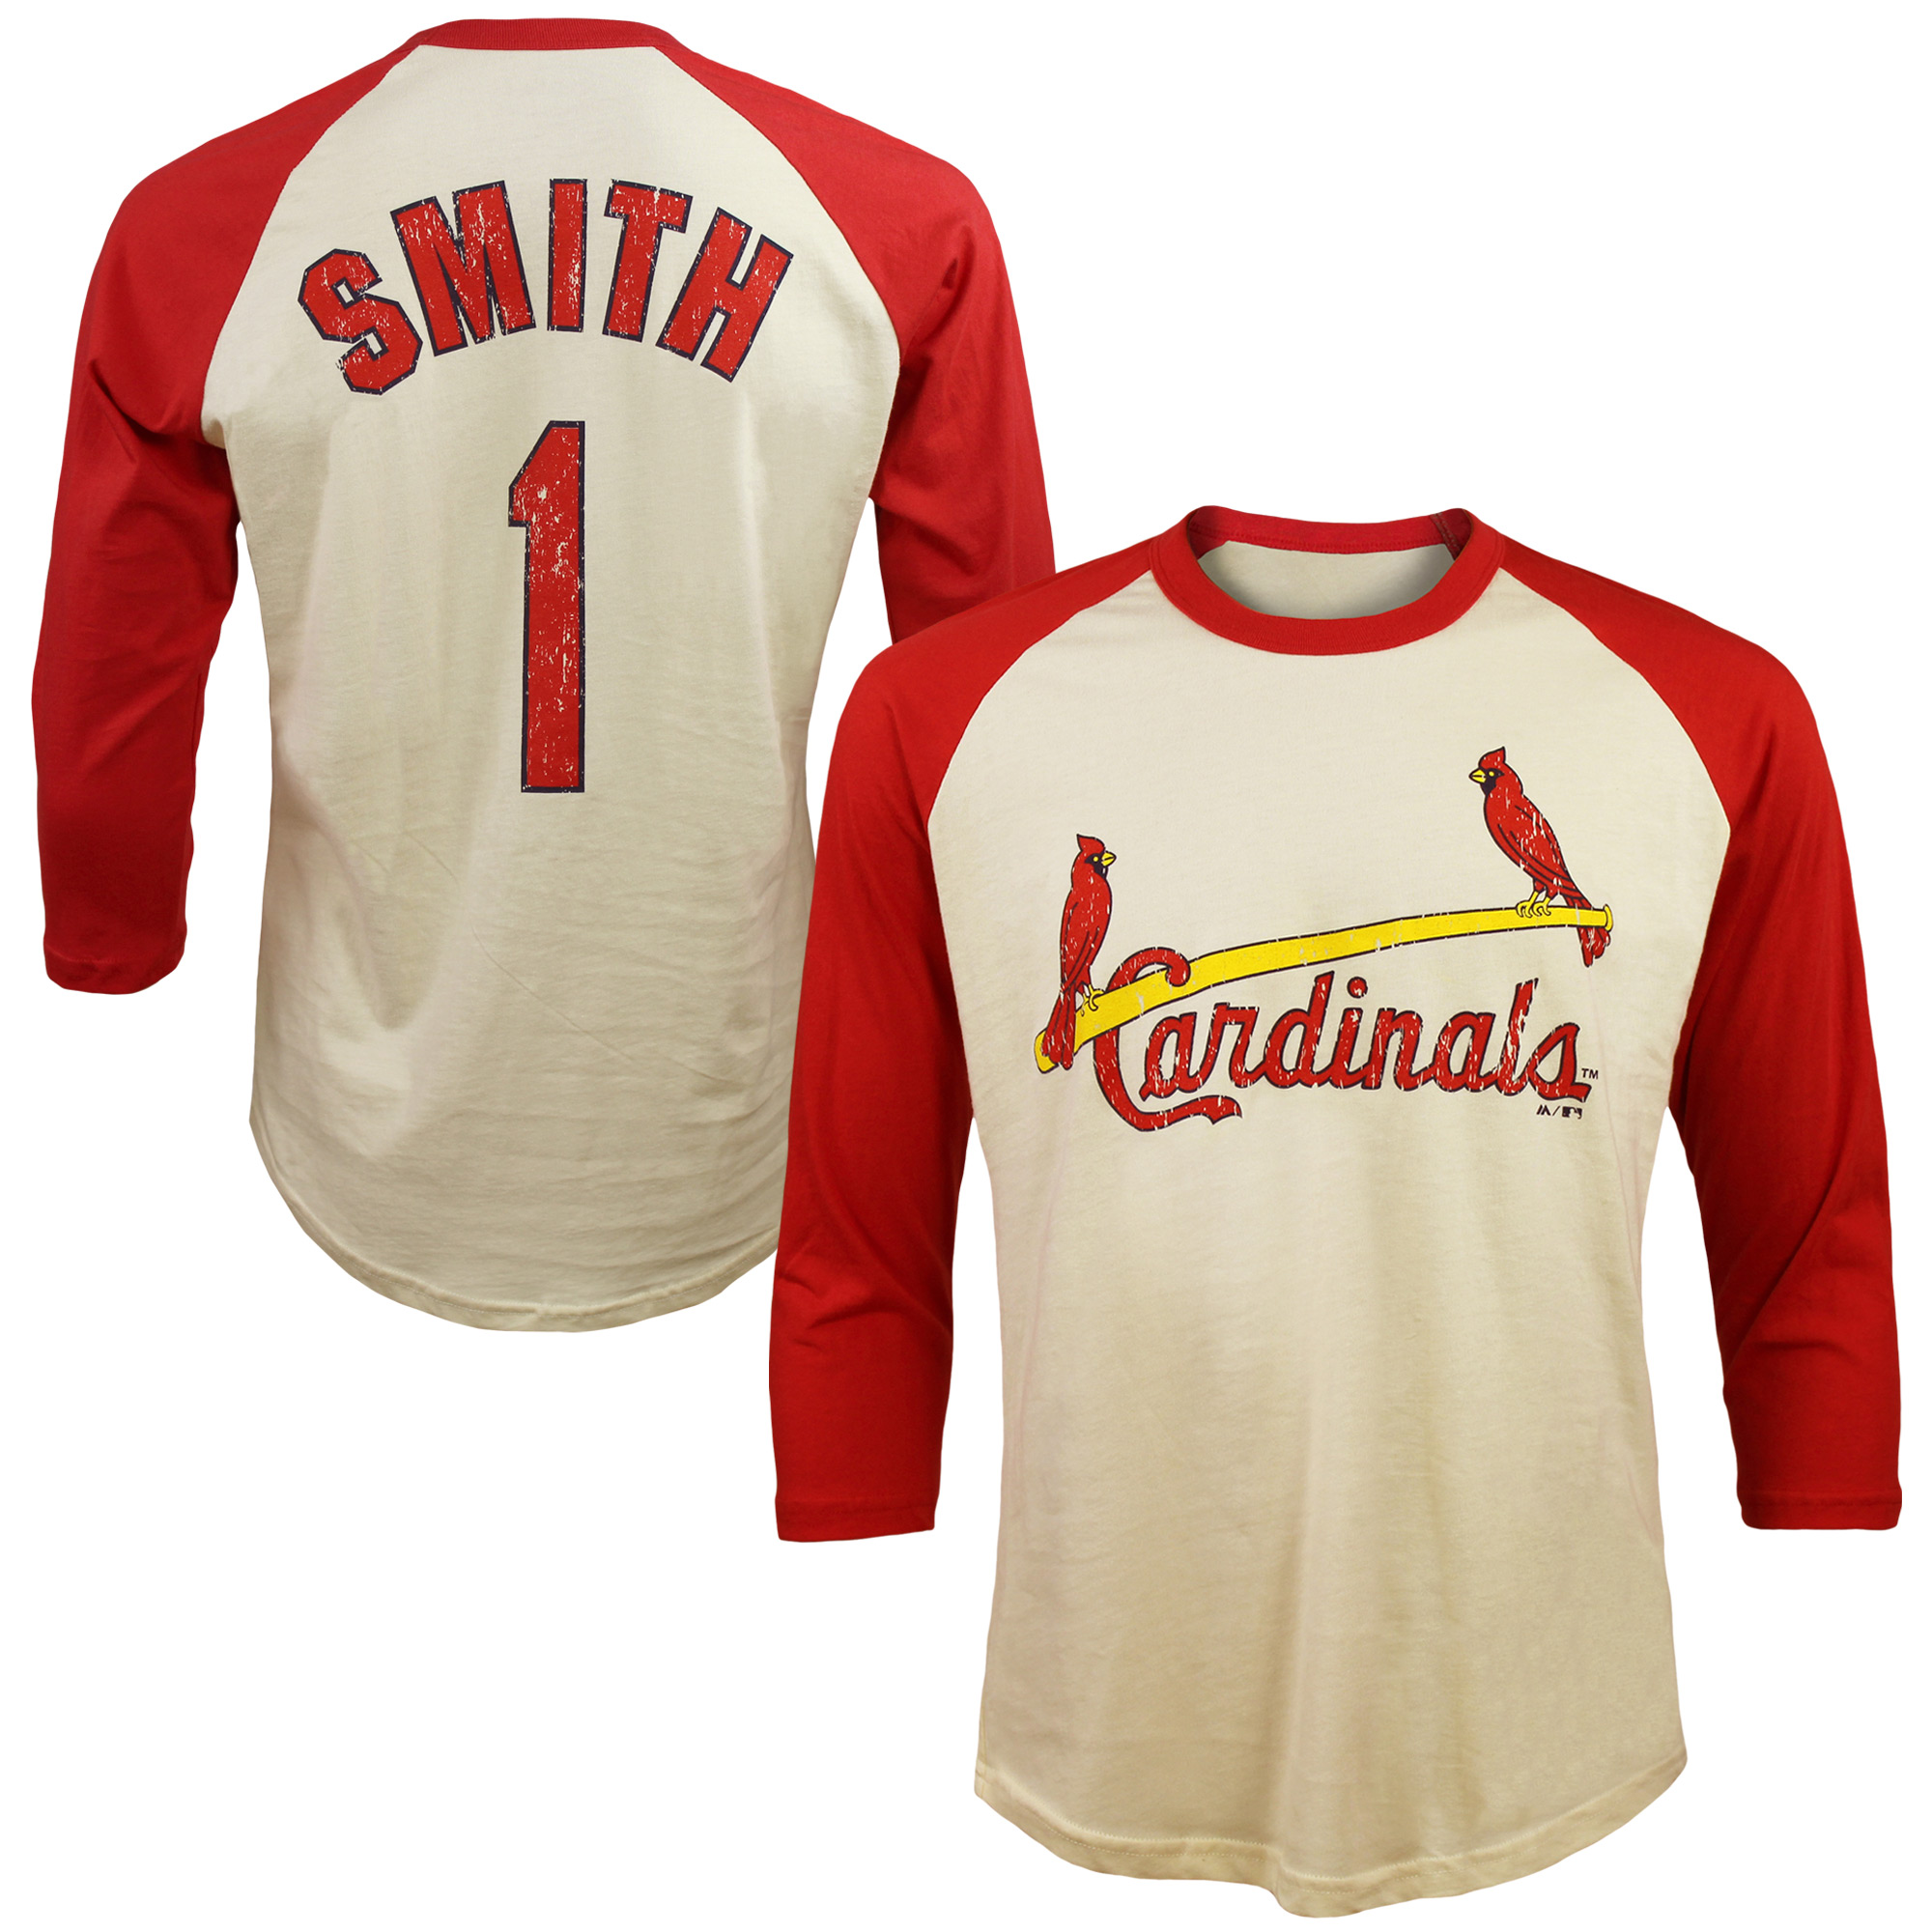 Ozzie Smith St. Louis Cardinals Majestic Threads Softhand Cotton Cooperstown 3/4-Sleeve Raglan T-Shirt - Cream